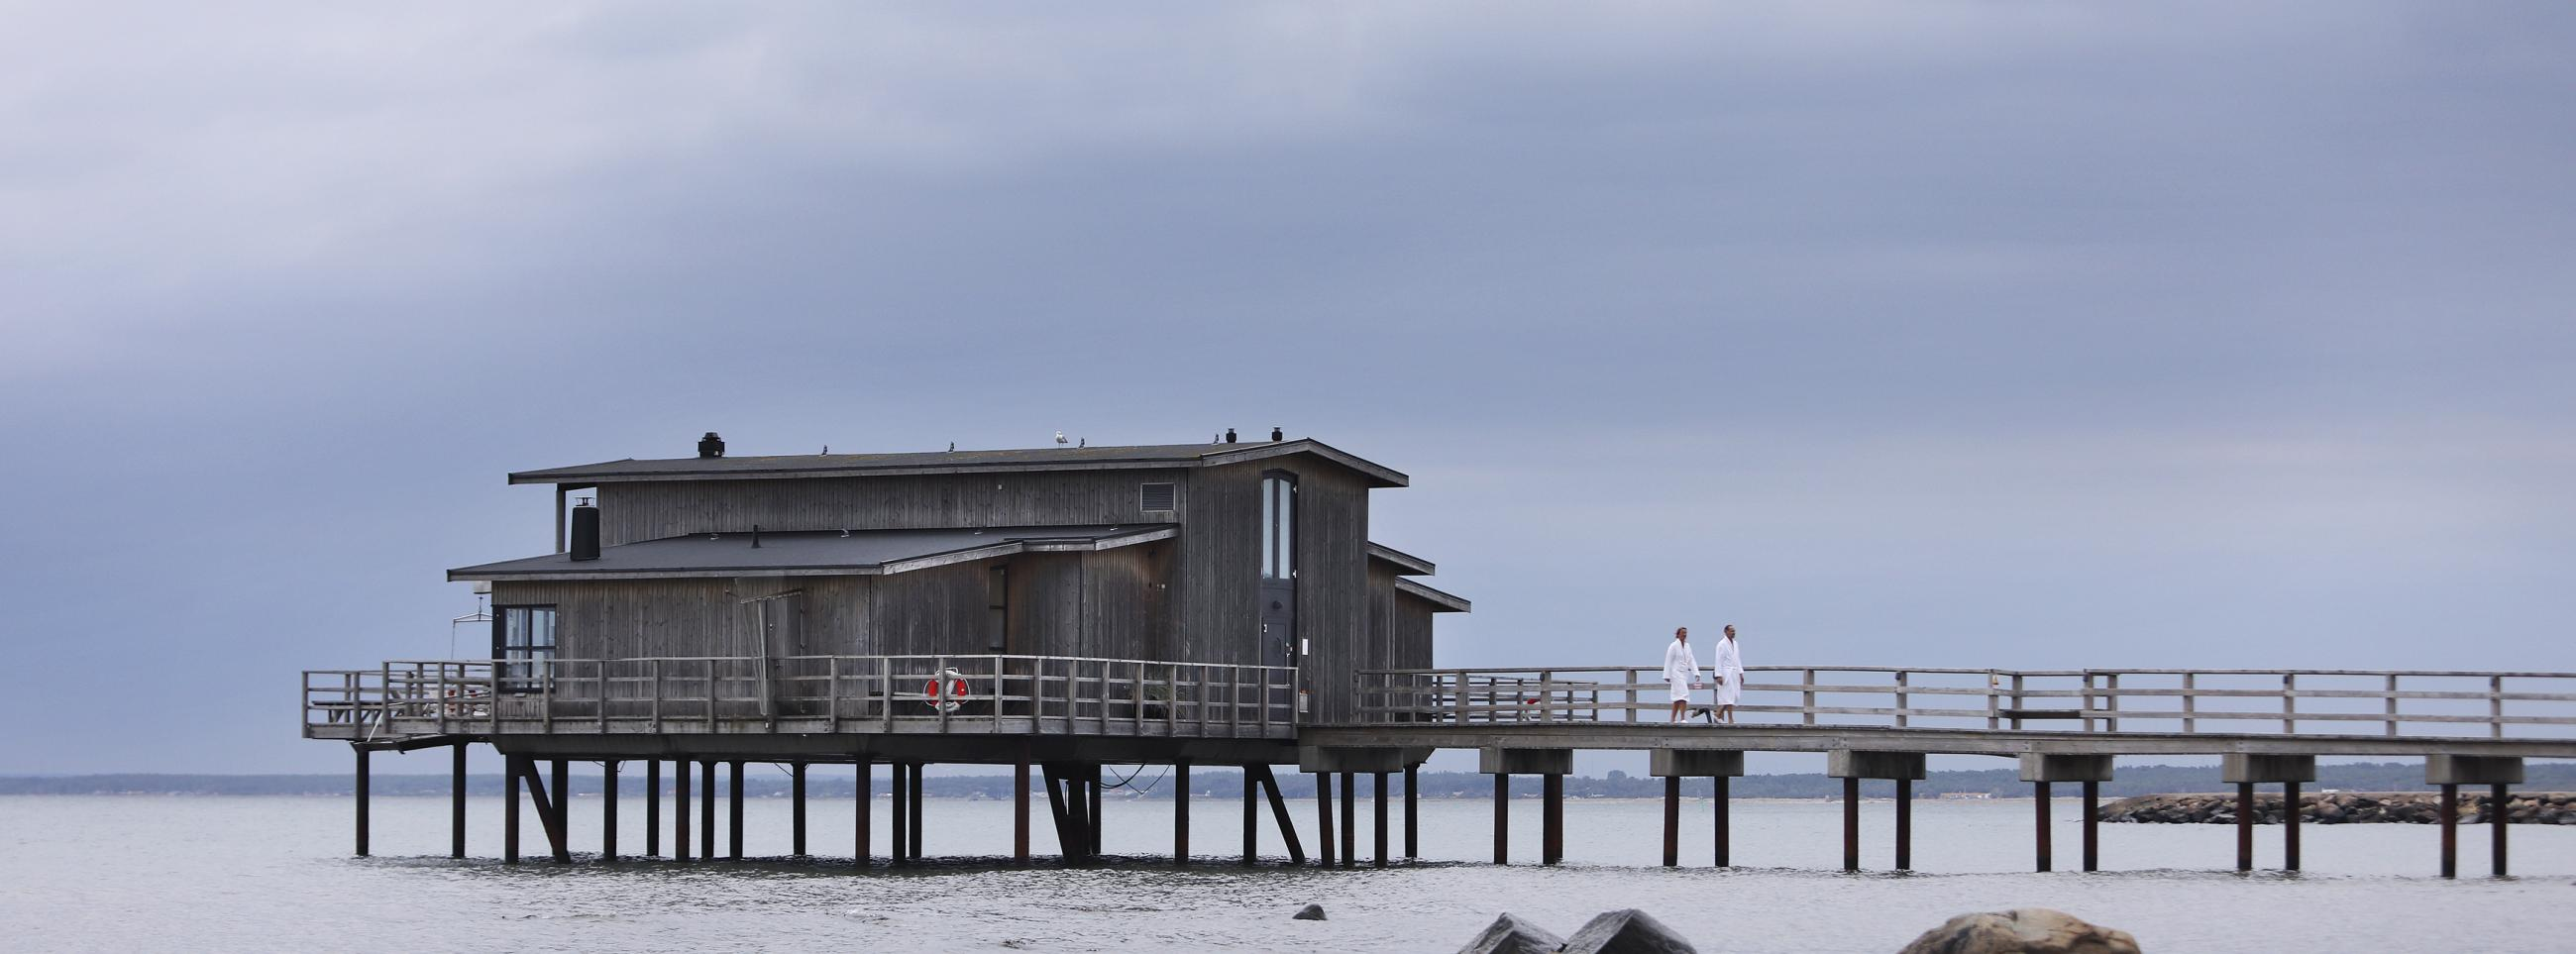 Land view of open-air bathhouse held up by pier stilts in the sea